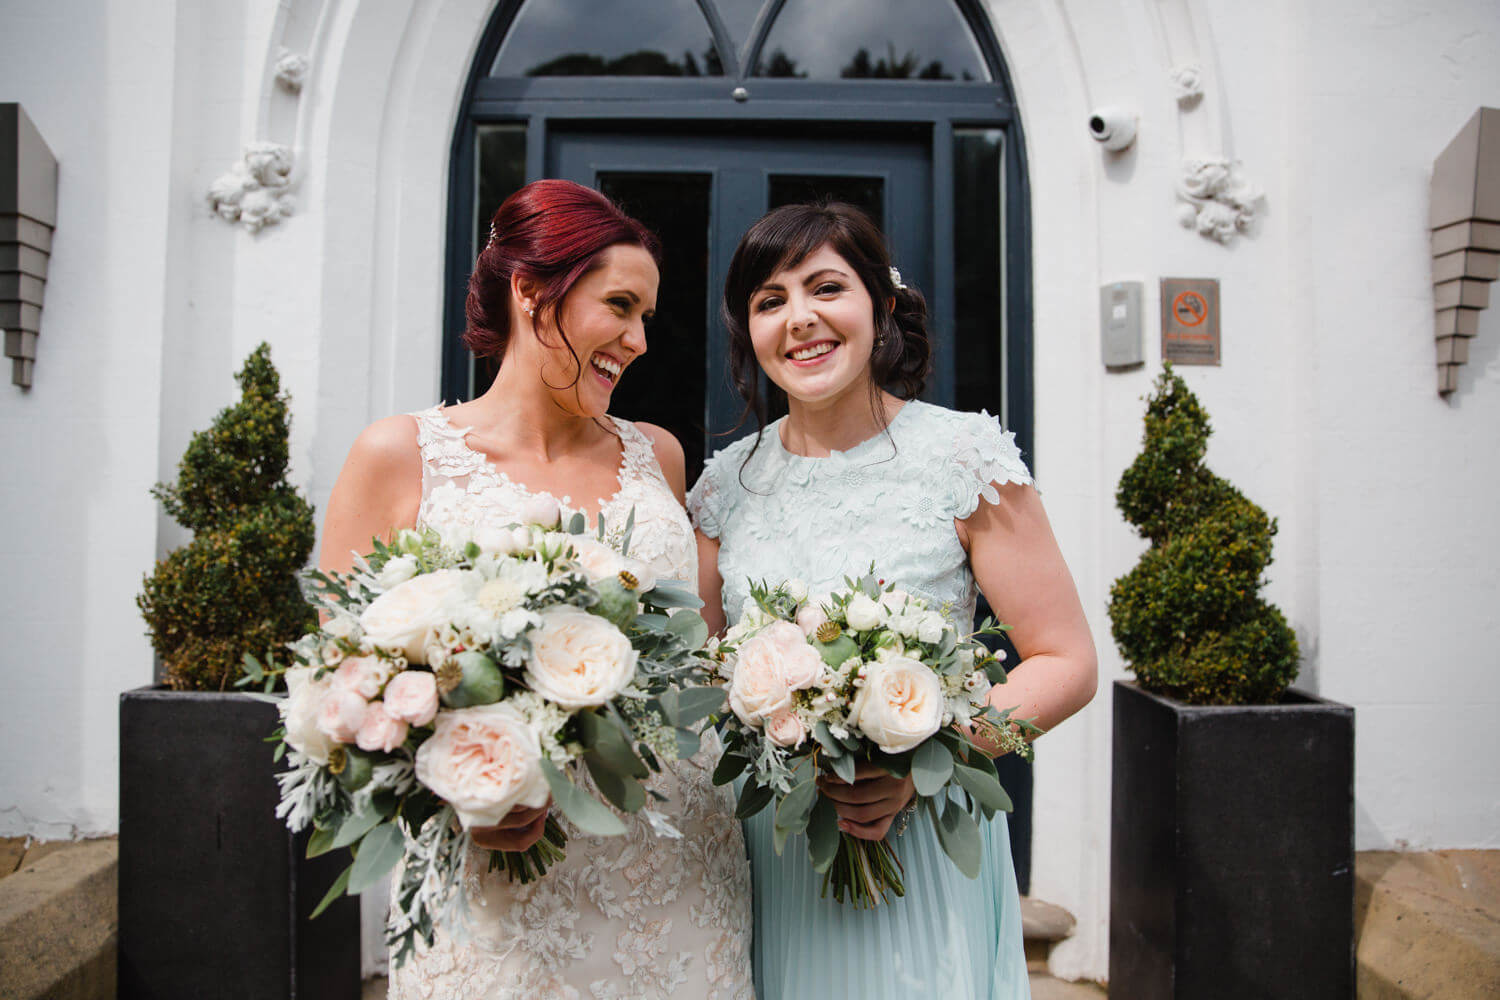 bride sharing moment with bridesmaid sister while holding floral bouquets